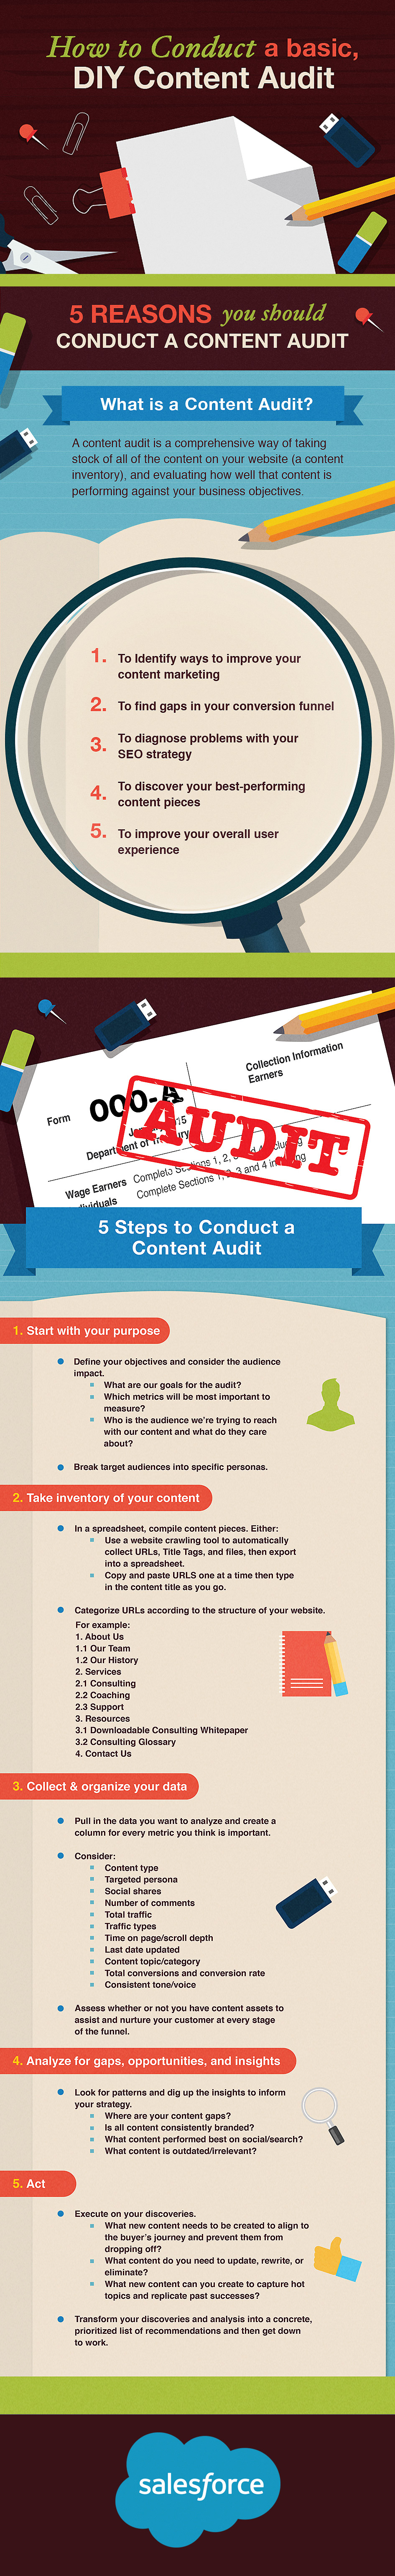 Conduct a DIY Content Audit Infographic